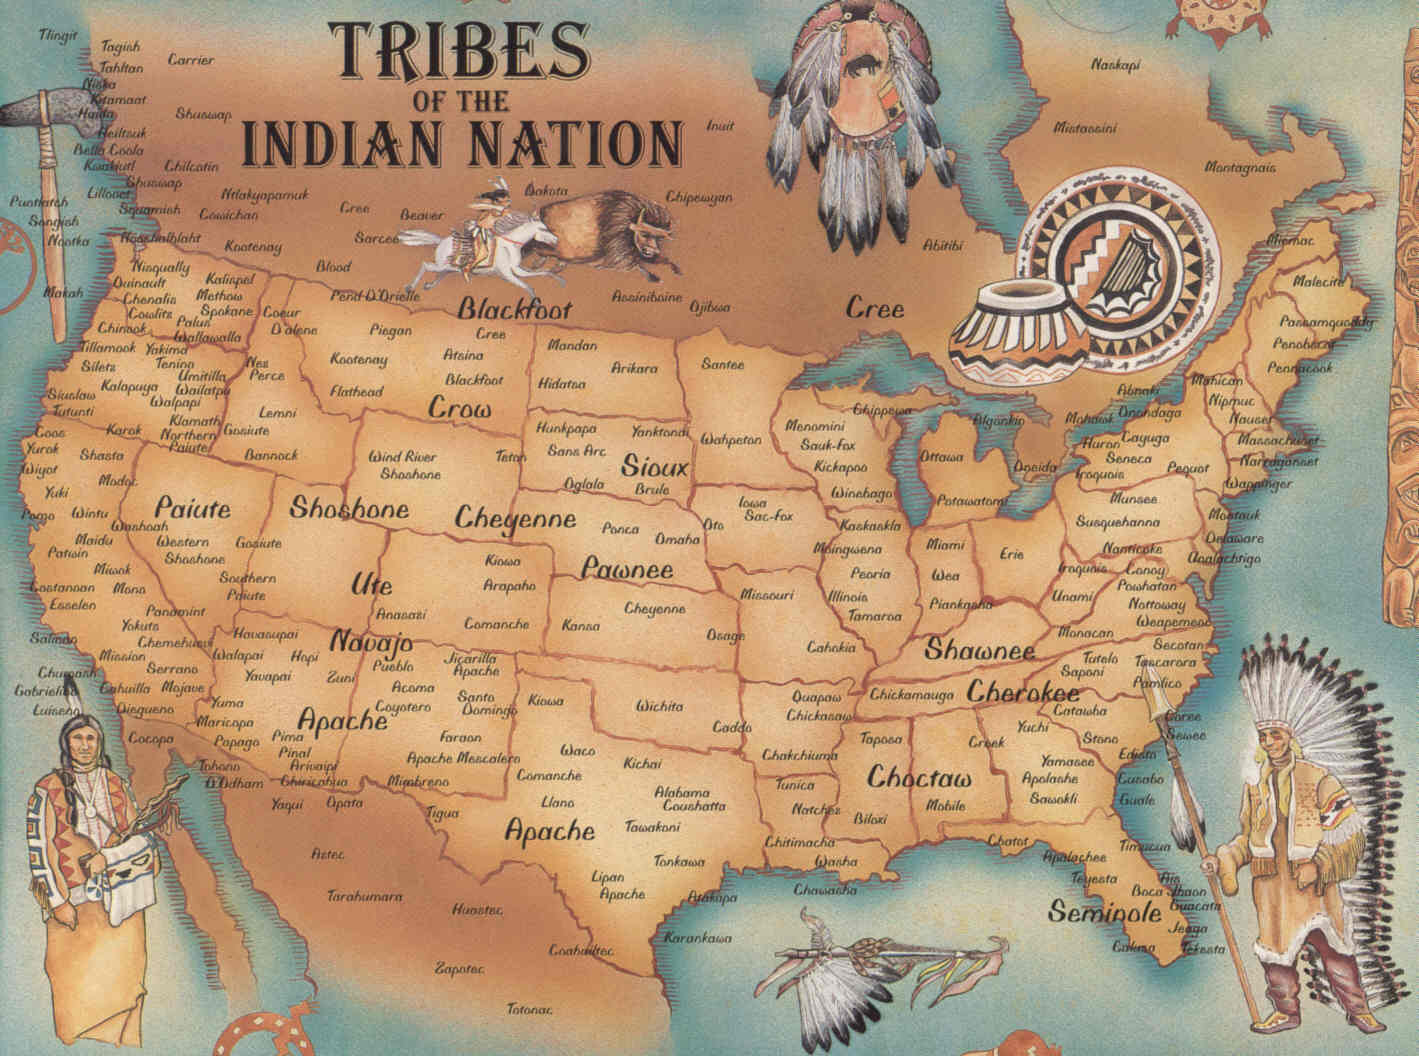 native_american_tribes Indian Reservation Map Of Us on map of us indian wars, map of texas indian reservations, map of us indian tribes, map of indian reservations in the 1775, map of nd indian reservations, american indian reservations, map of native american indians, map of reservations in the united states, map of american reservations, bia map indian reservations, map of us indian casinos, usa map indian reservations, map of indian reservations in 1890, maps of current indian reservations,